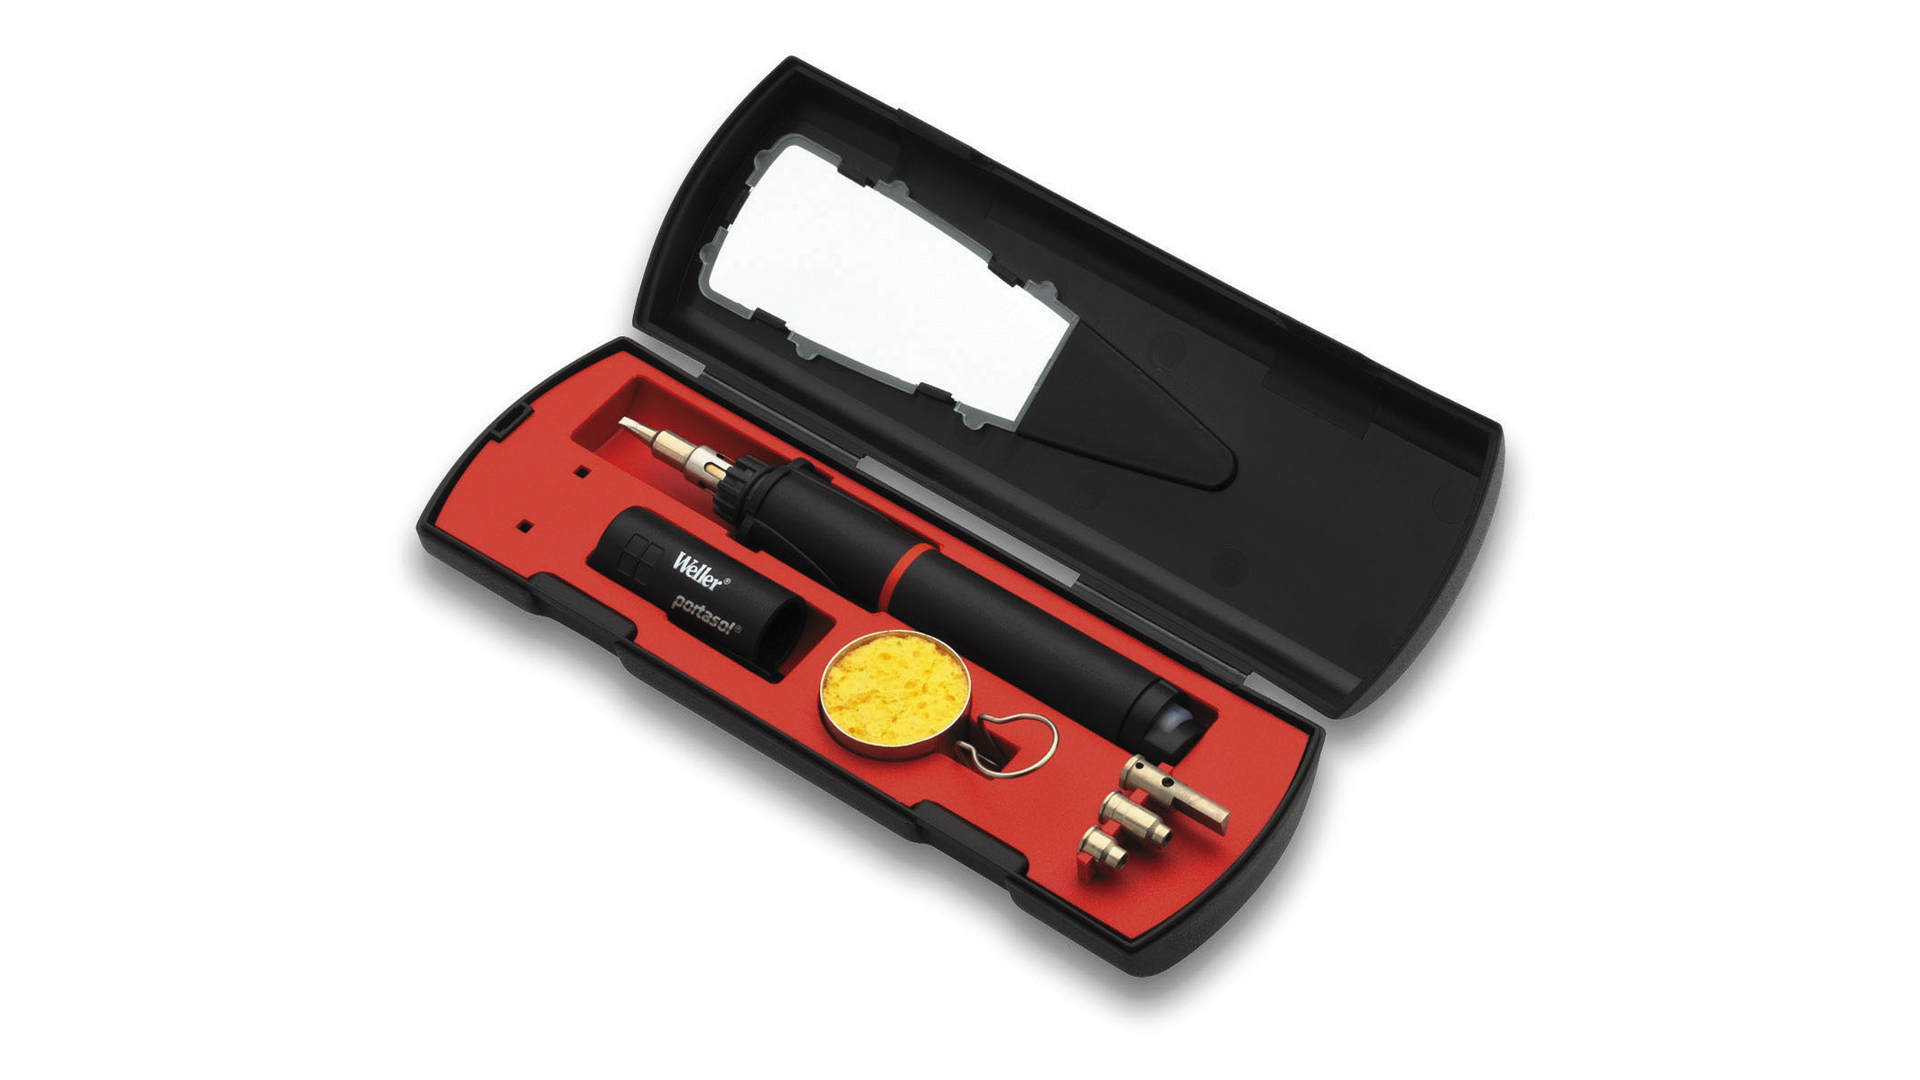 The Weller P2KC Butane Soldering Iron